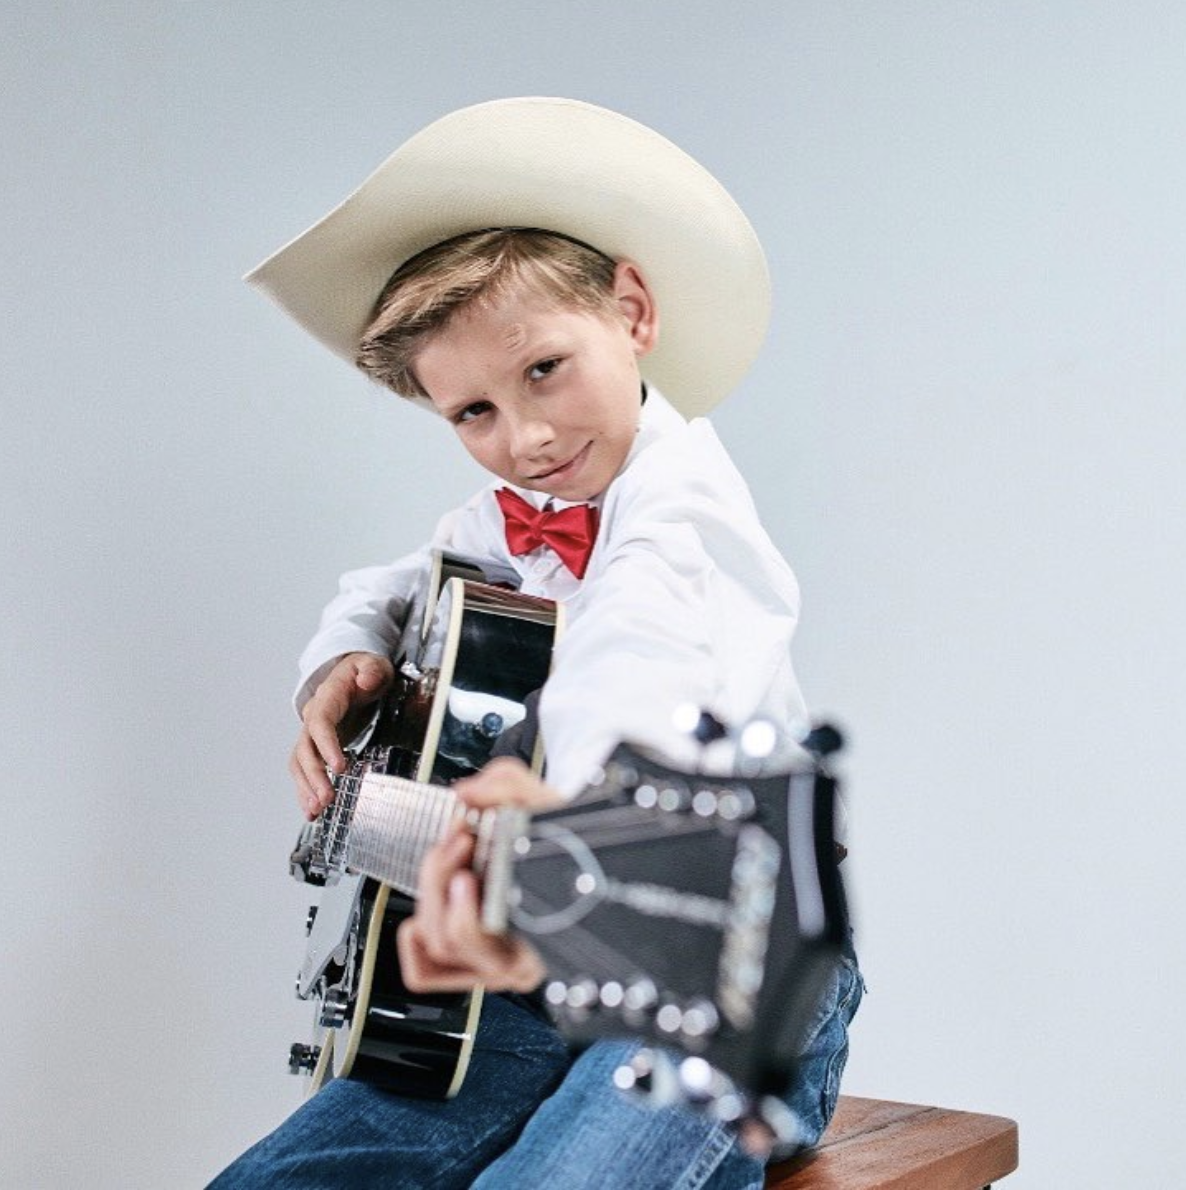 Mason Ramsey has become an internet hit